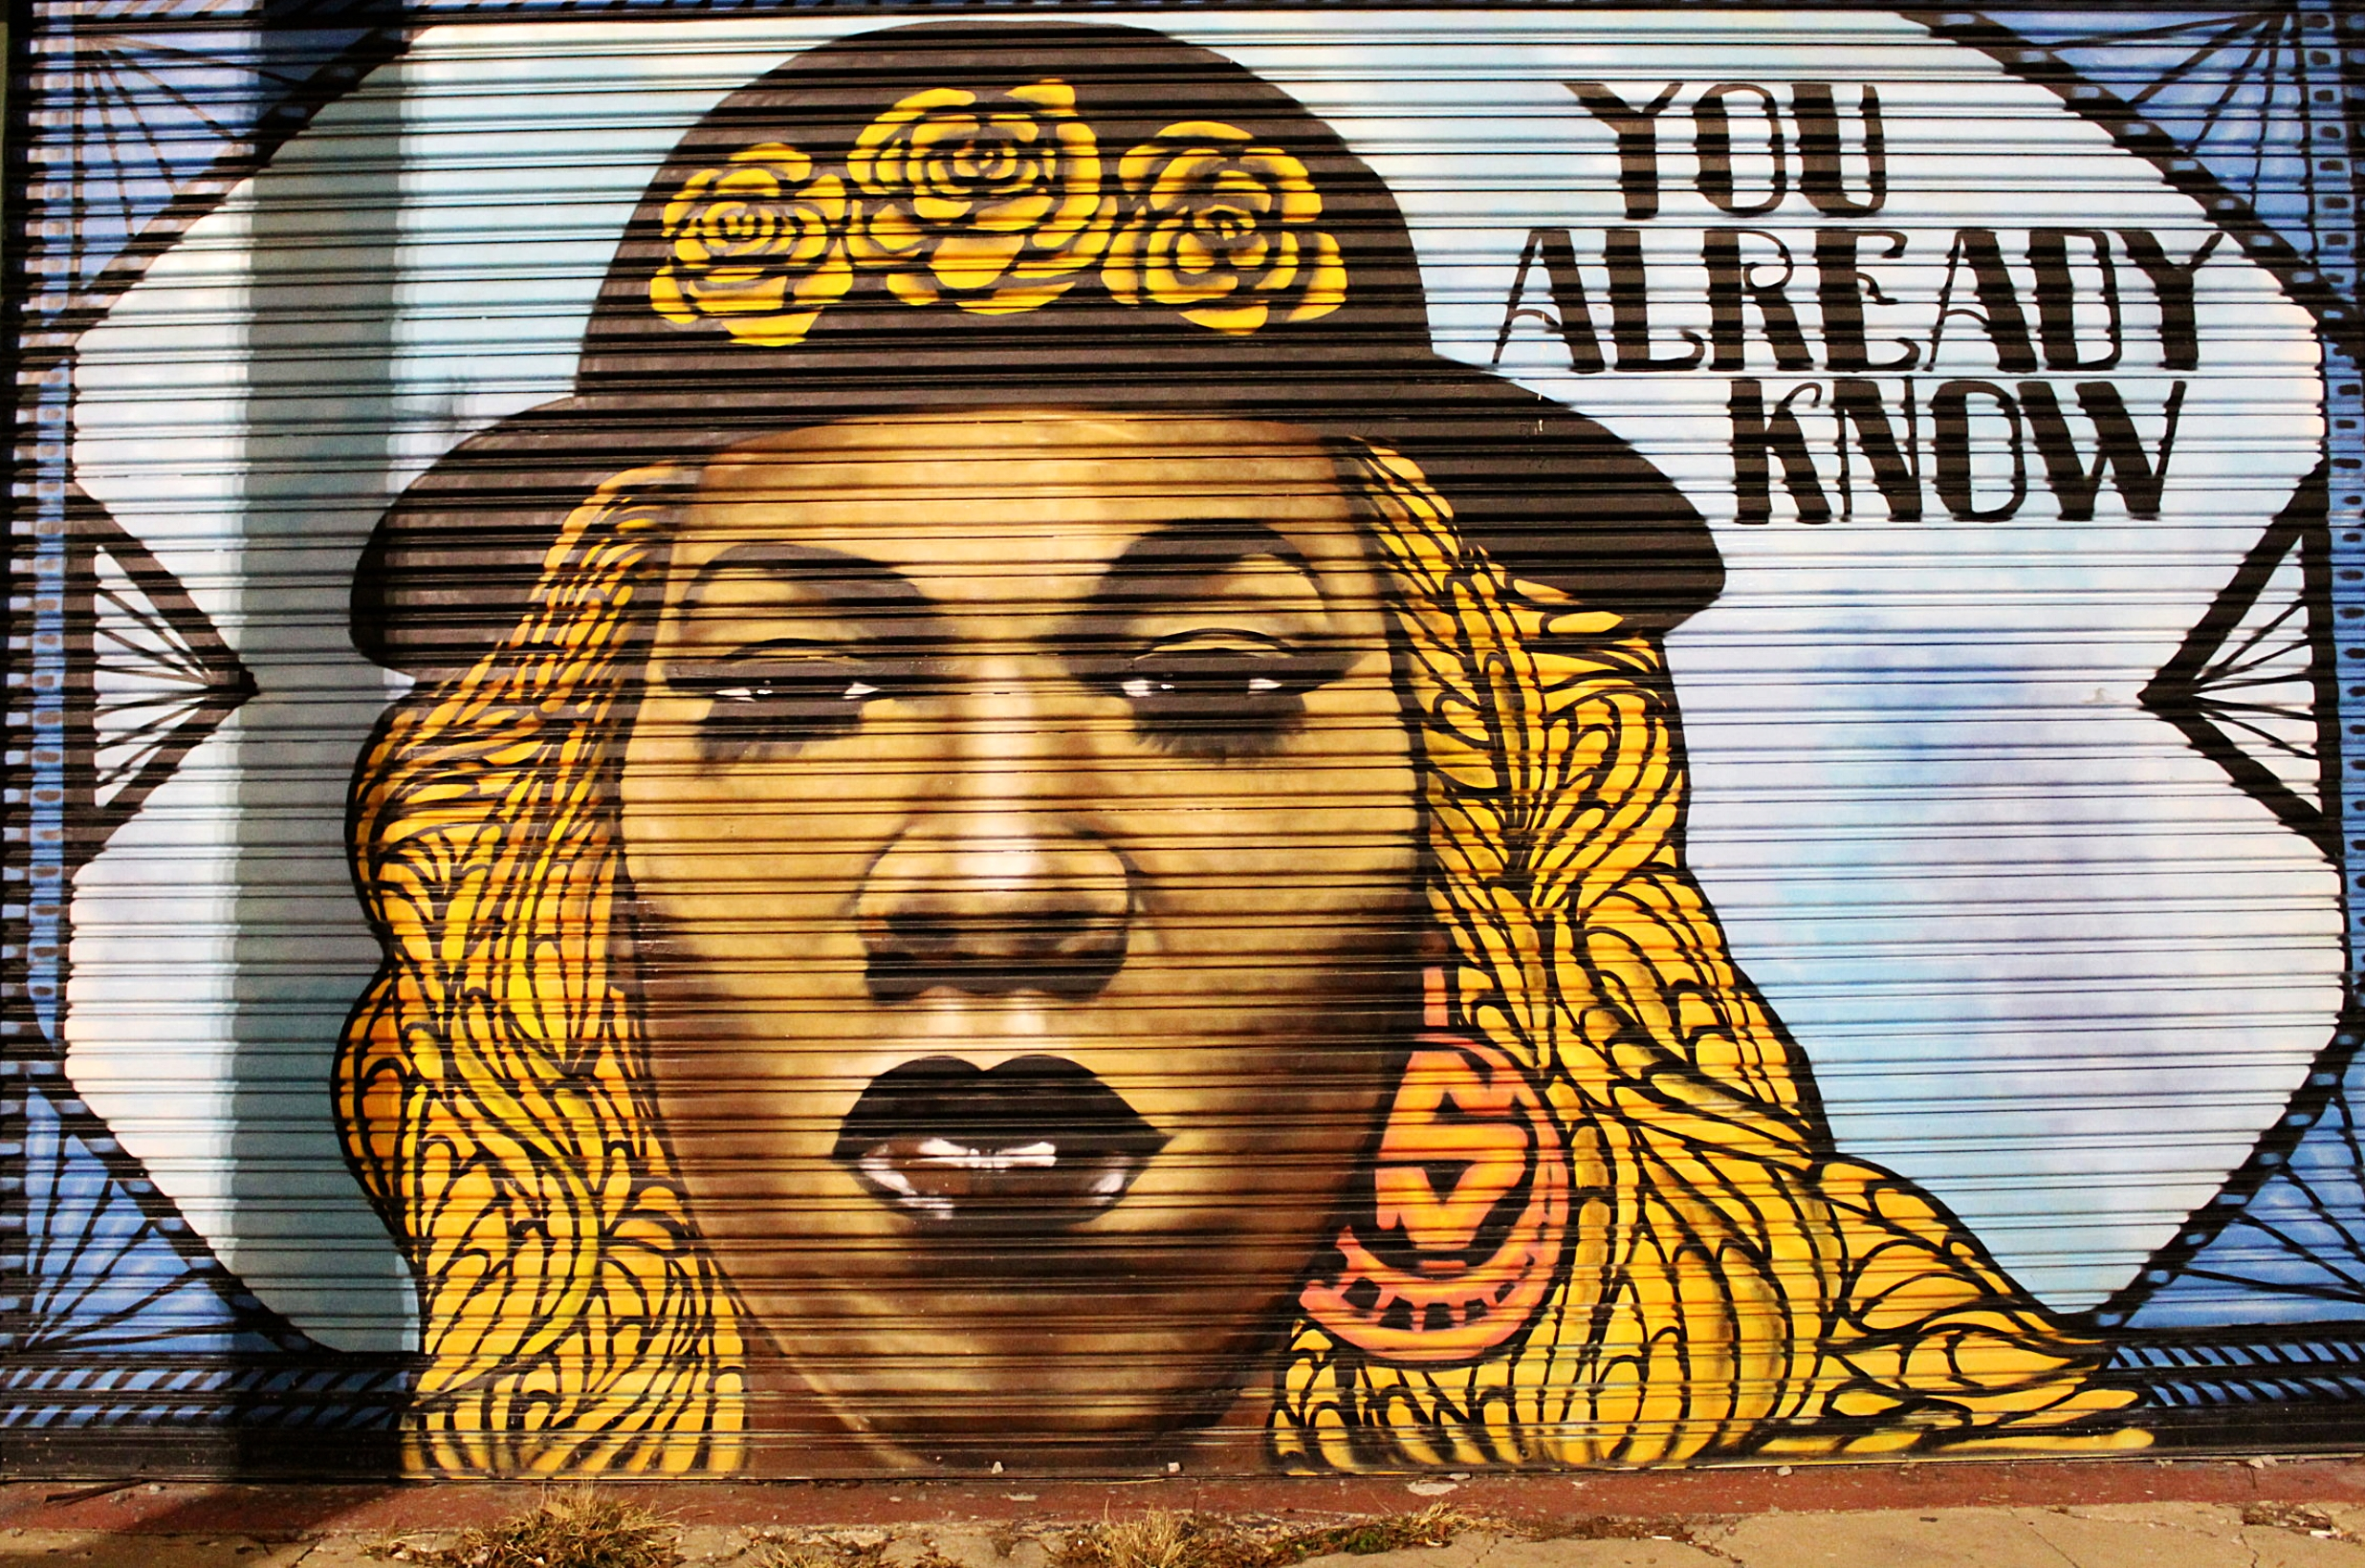 Big Freedia Mural in New Orleans